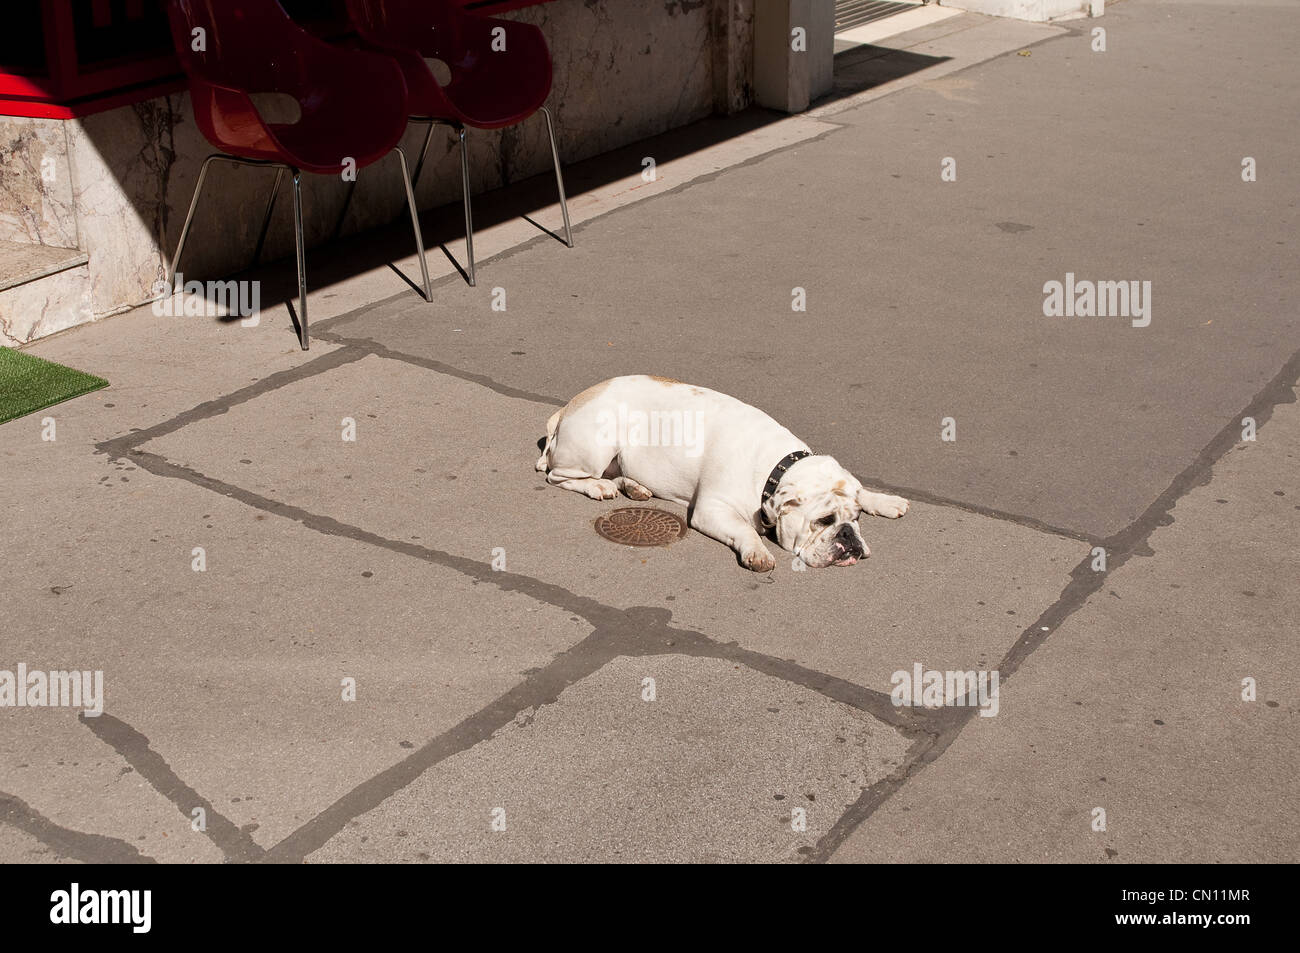 Bulldog lies in the street in the hot summer weather - Stock Image